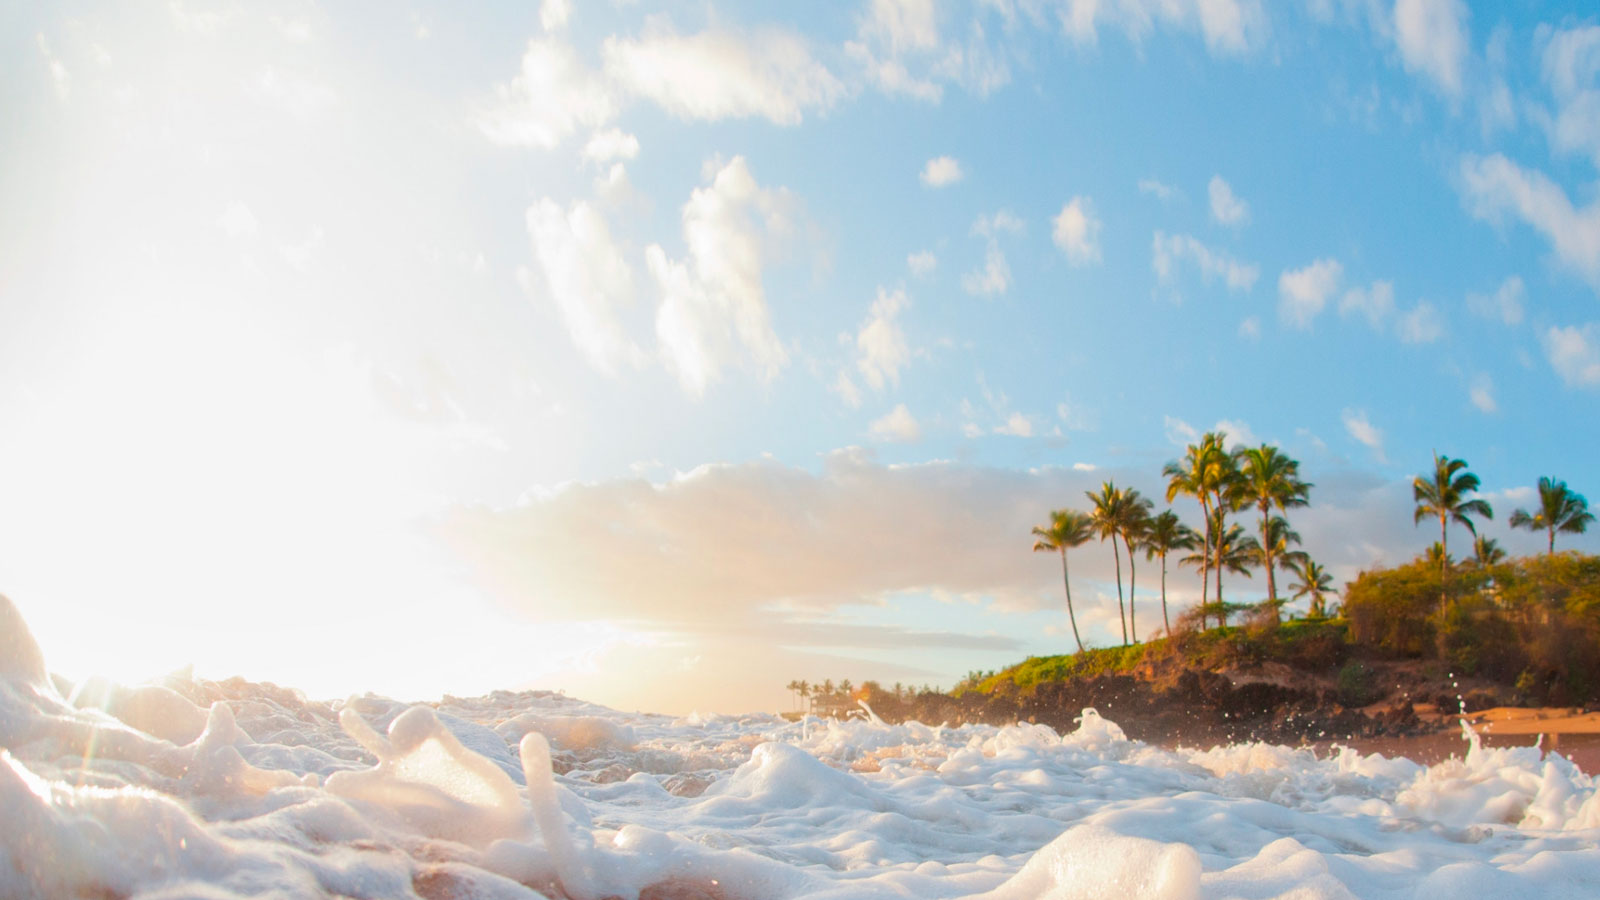 Ocean waves and palm trees in Hawaii